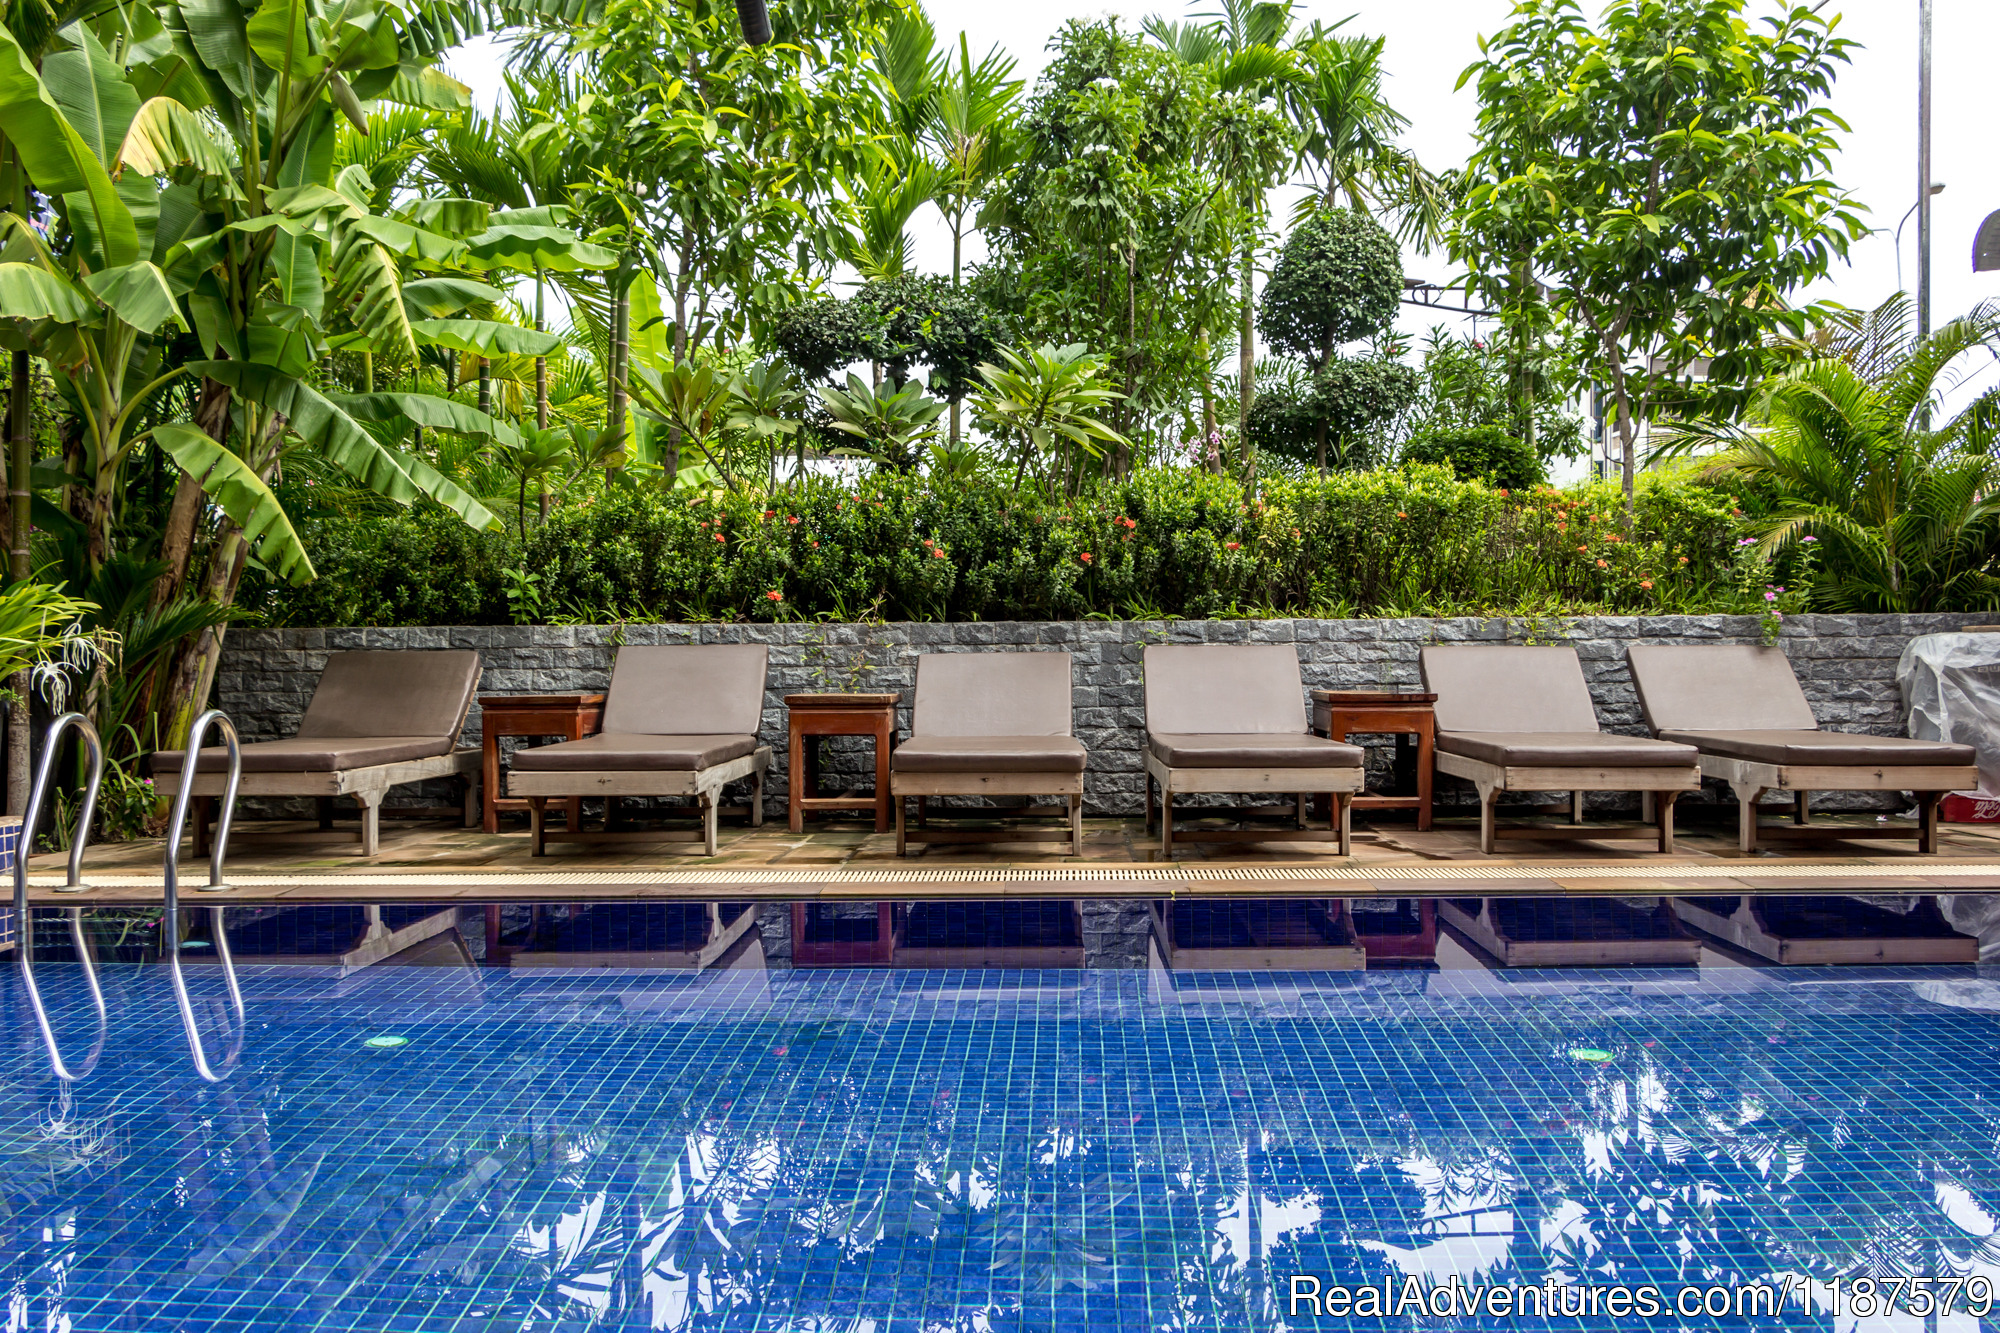 Swimming Pool | Image #1/7 |  Siem reap, Cambodia | Bed & Breakfasts | Jasmine Lodge